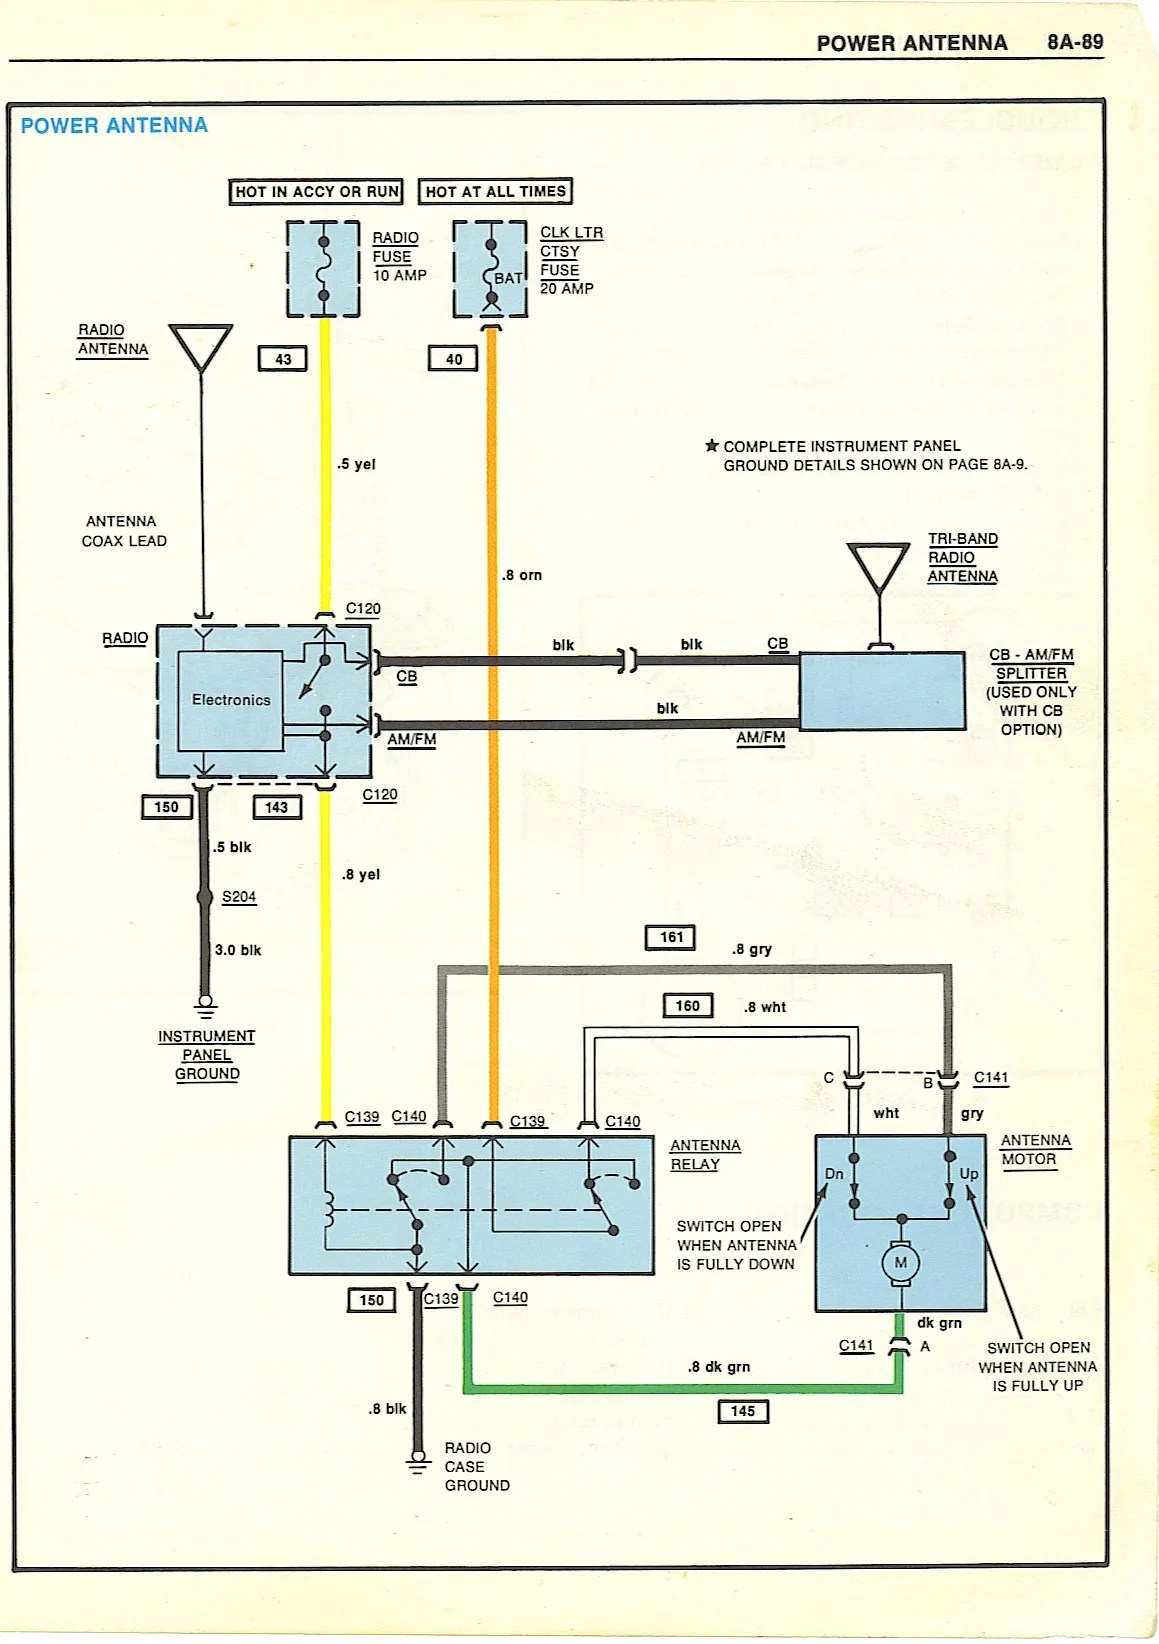 hight resolution of 1984 corvette radio wiring diagram wiring diagram c4 corvette wiring diagram 78 corvette power antenna wiring diagram